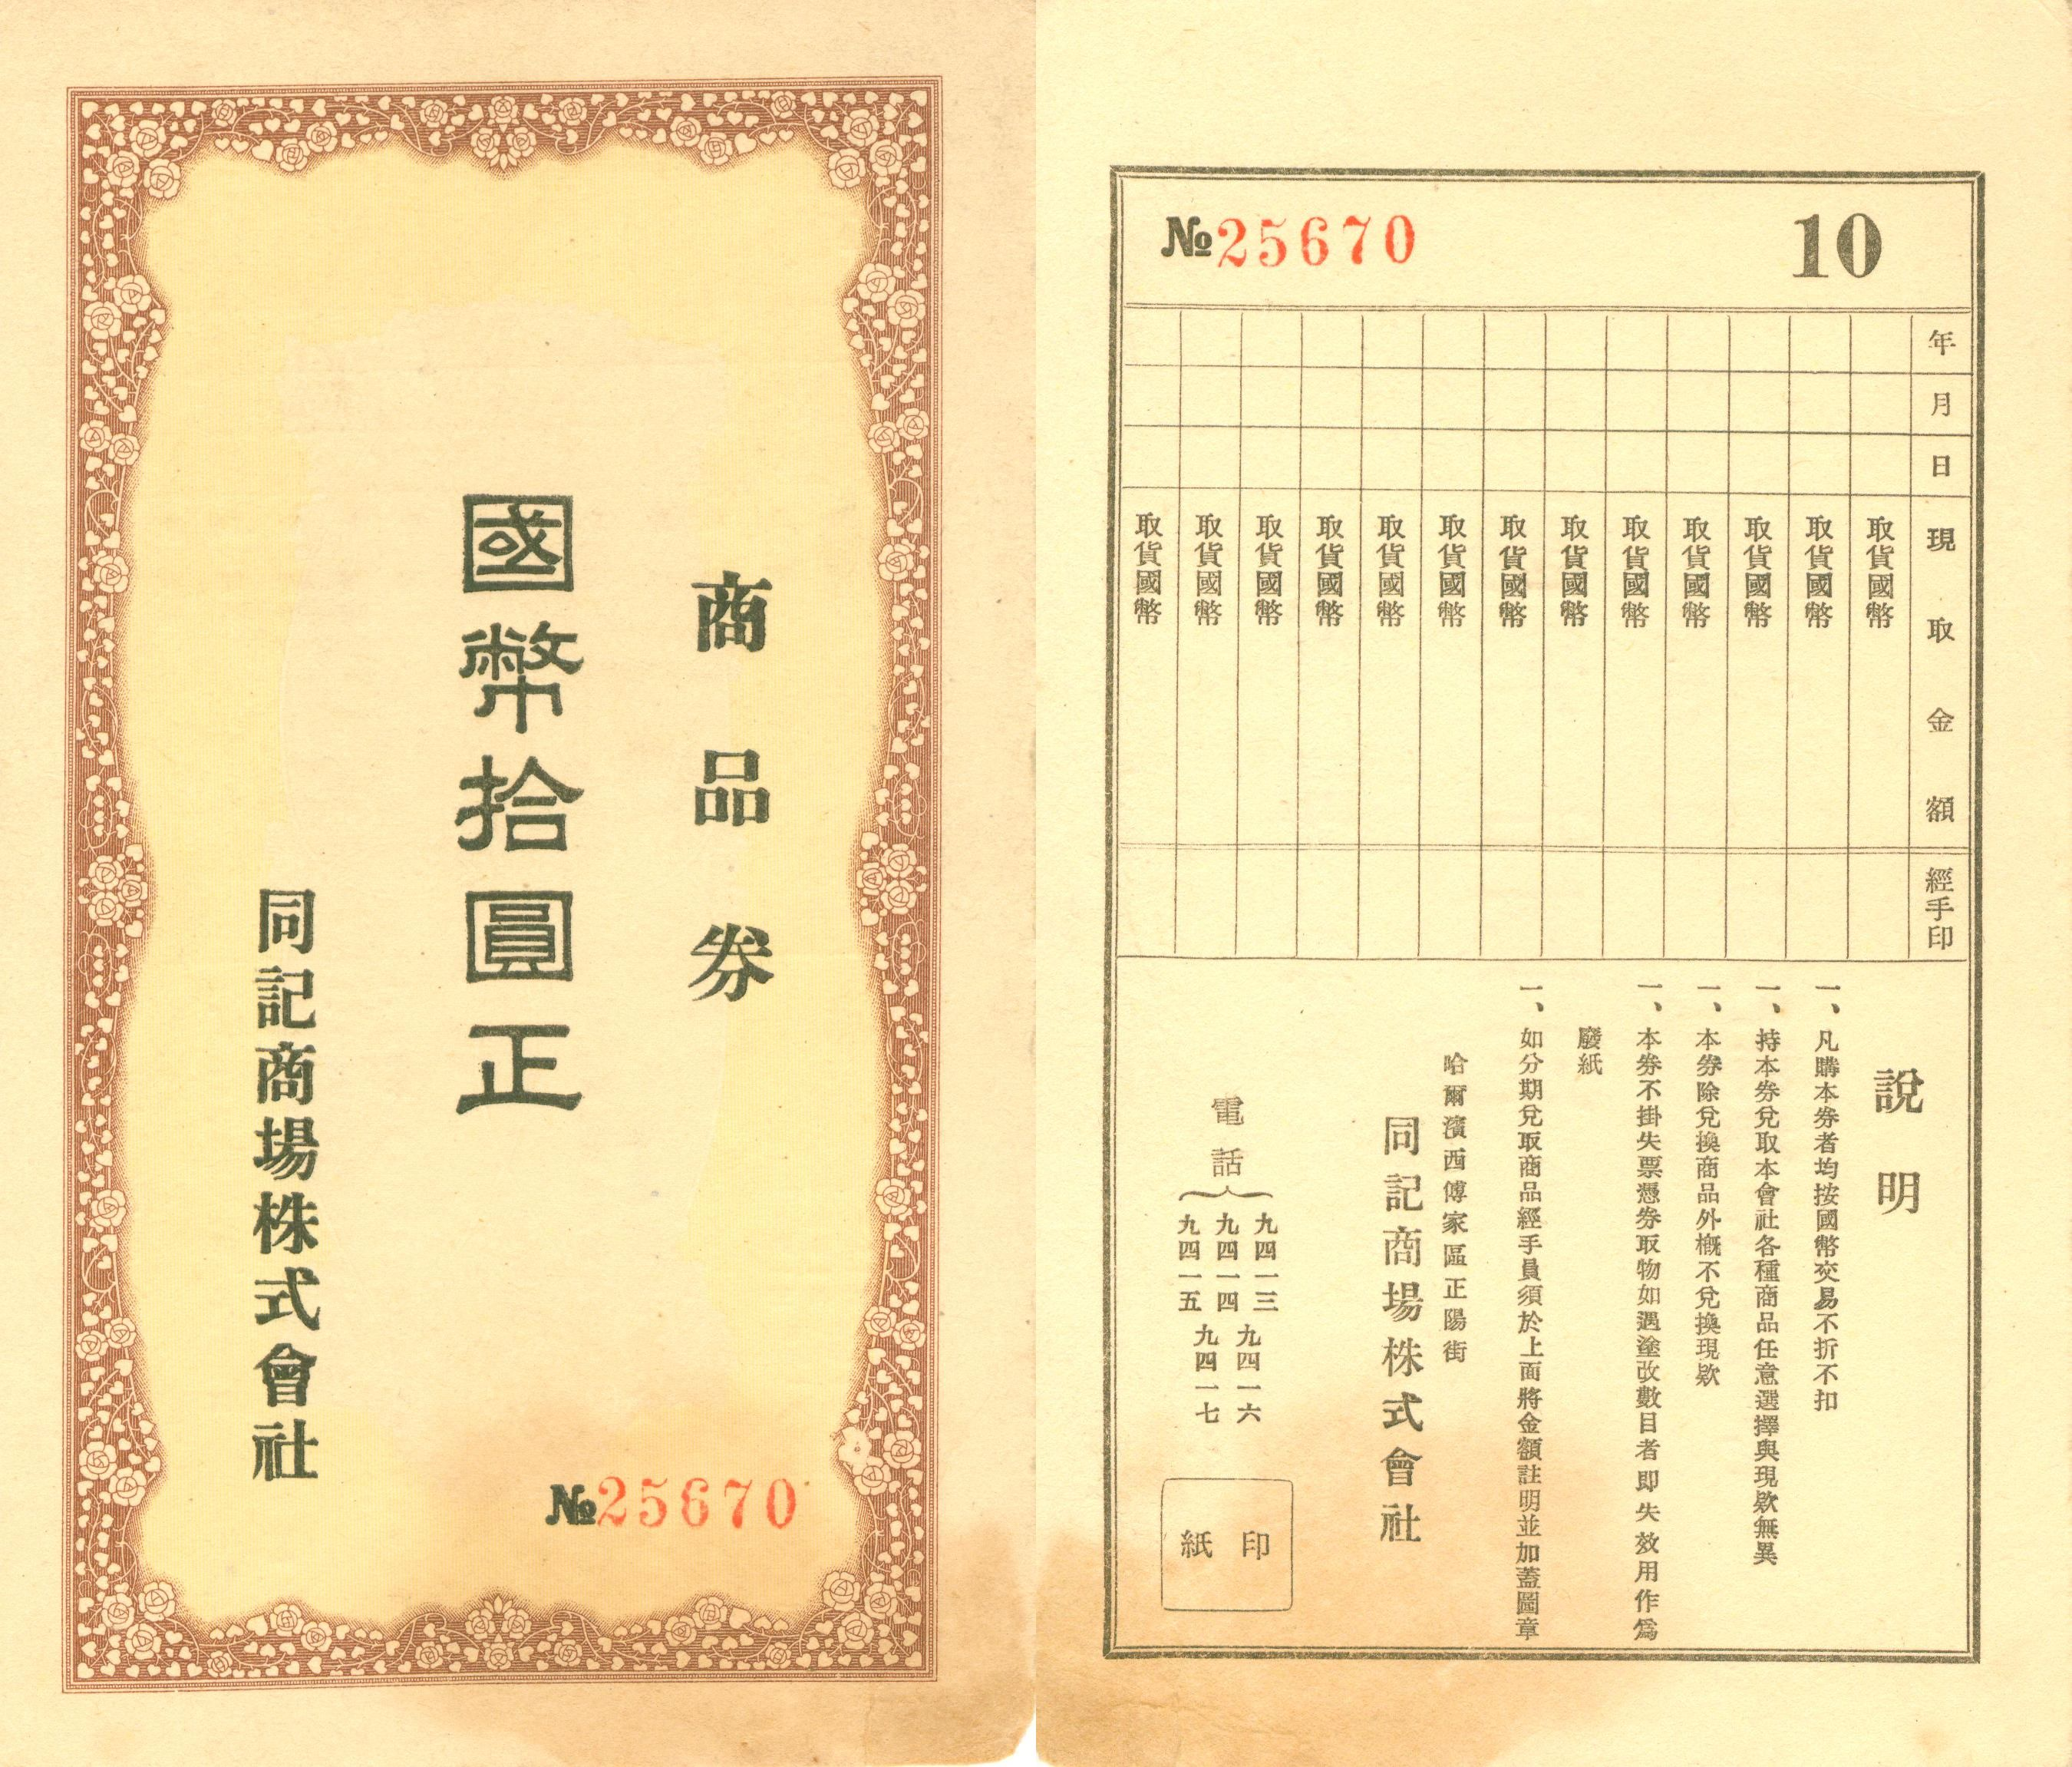 D6023, Manchuria Department Store Cash Coupons 10 Dollars, 1930's Watermark